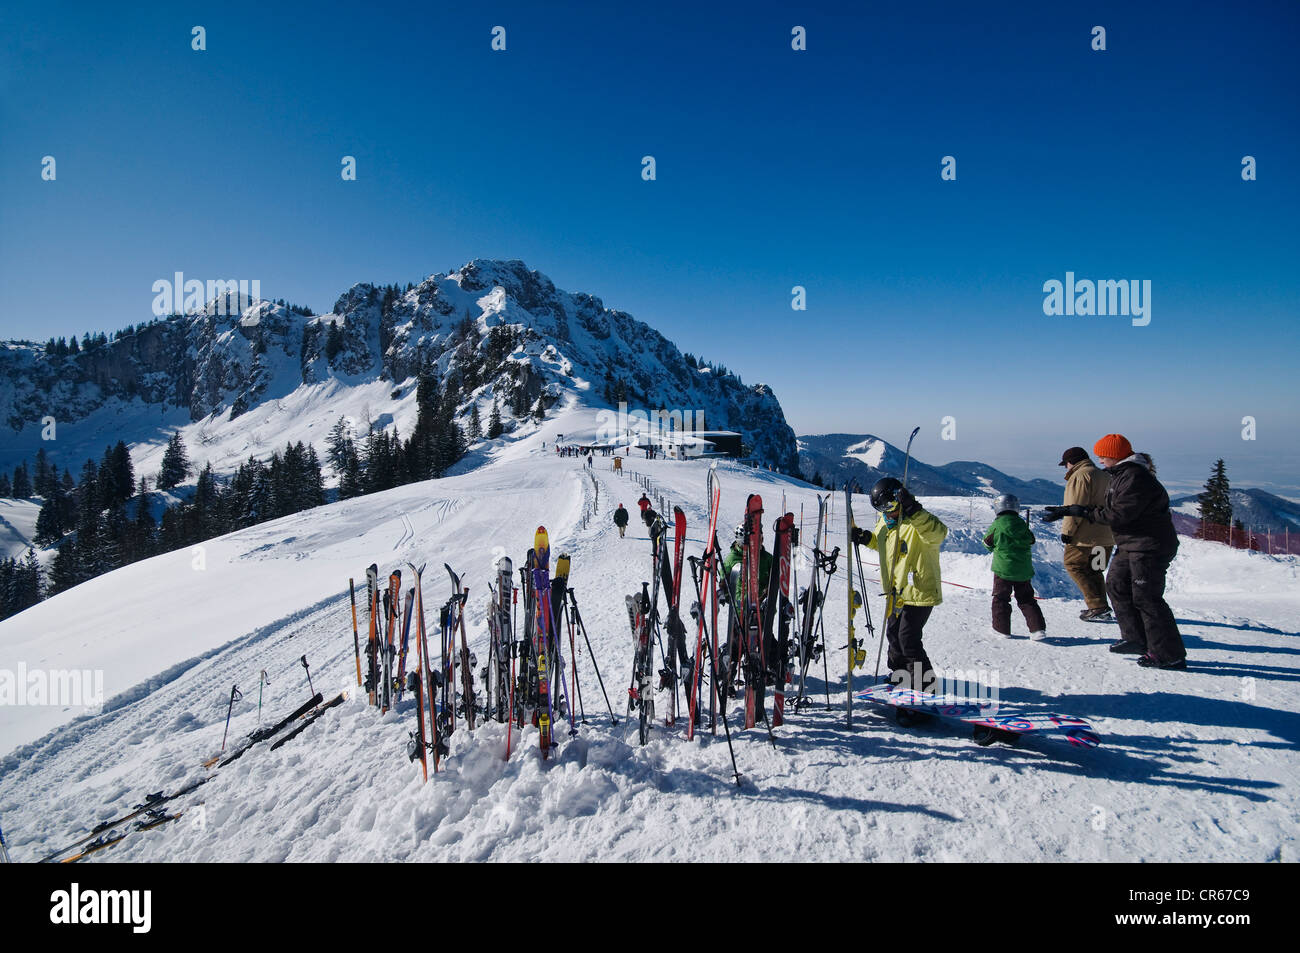 Mountain station 'Kampenwandbahn', with skis upright in the snow, skiers fetching their skis, Aschau, Chiemgau - Stock Image